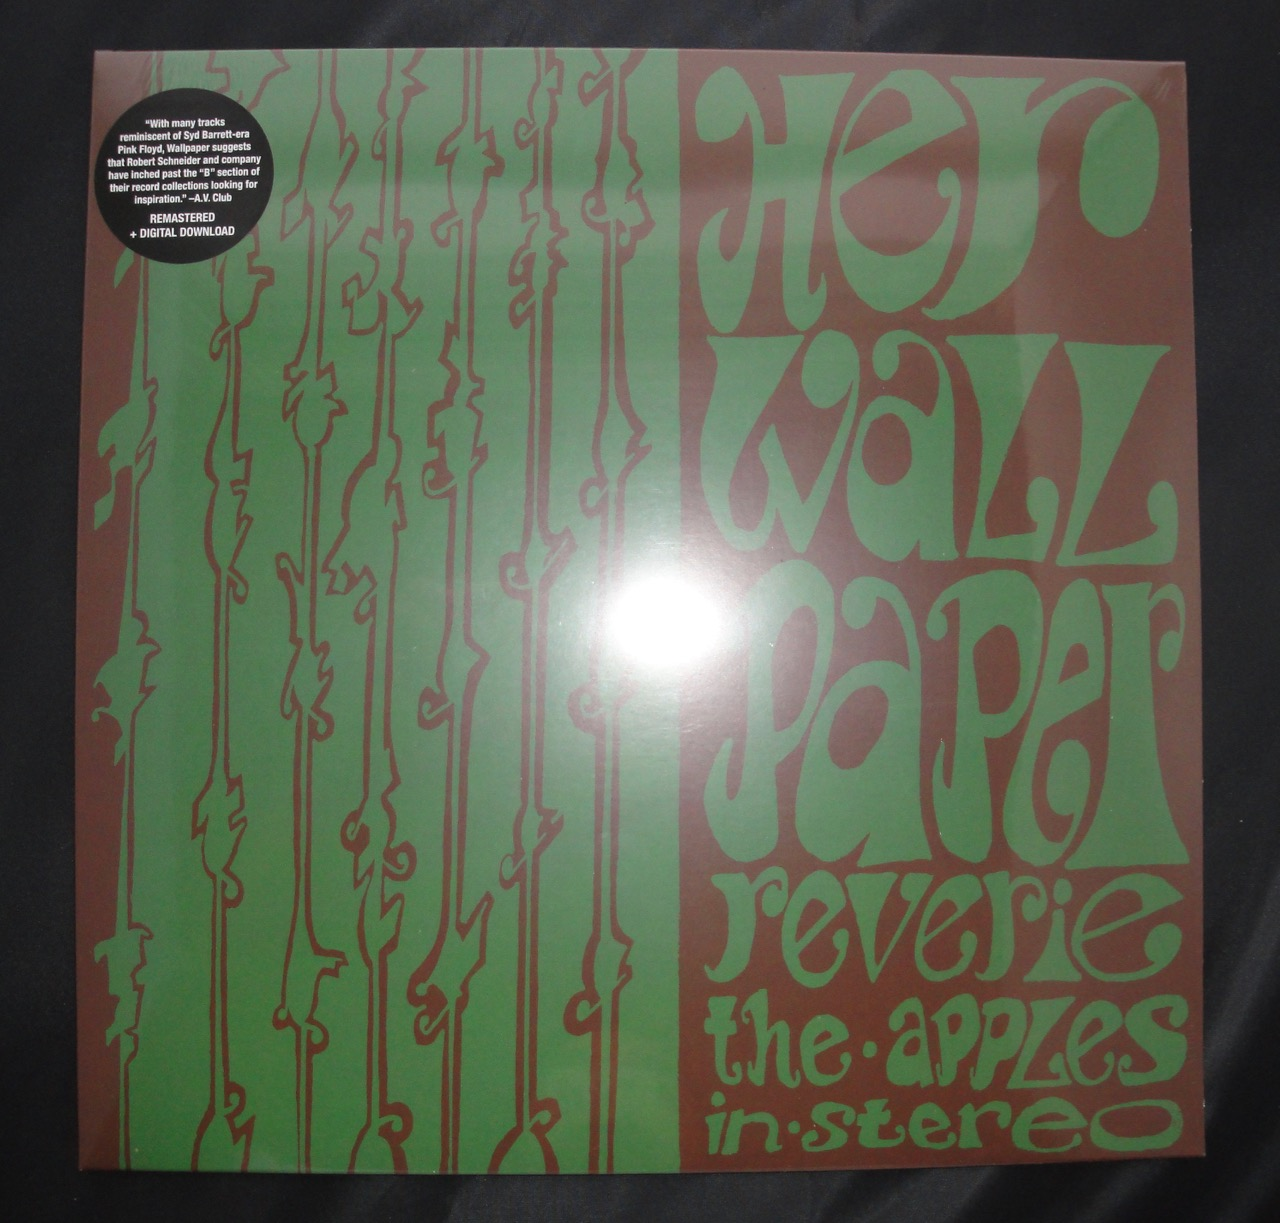 Apples In Stereo - Her Wallpaper Reverie - Vinyl LP Reissue, Yep Rock, 2017